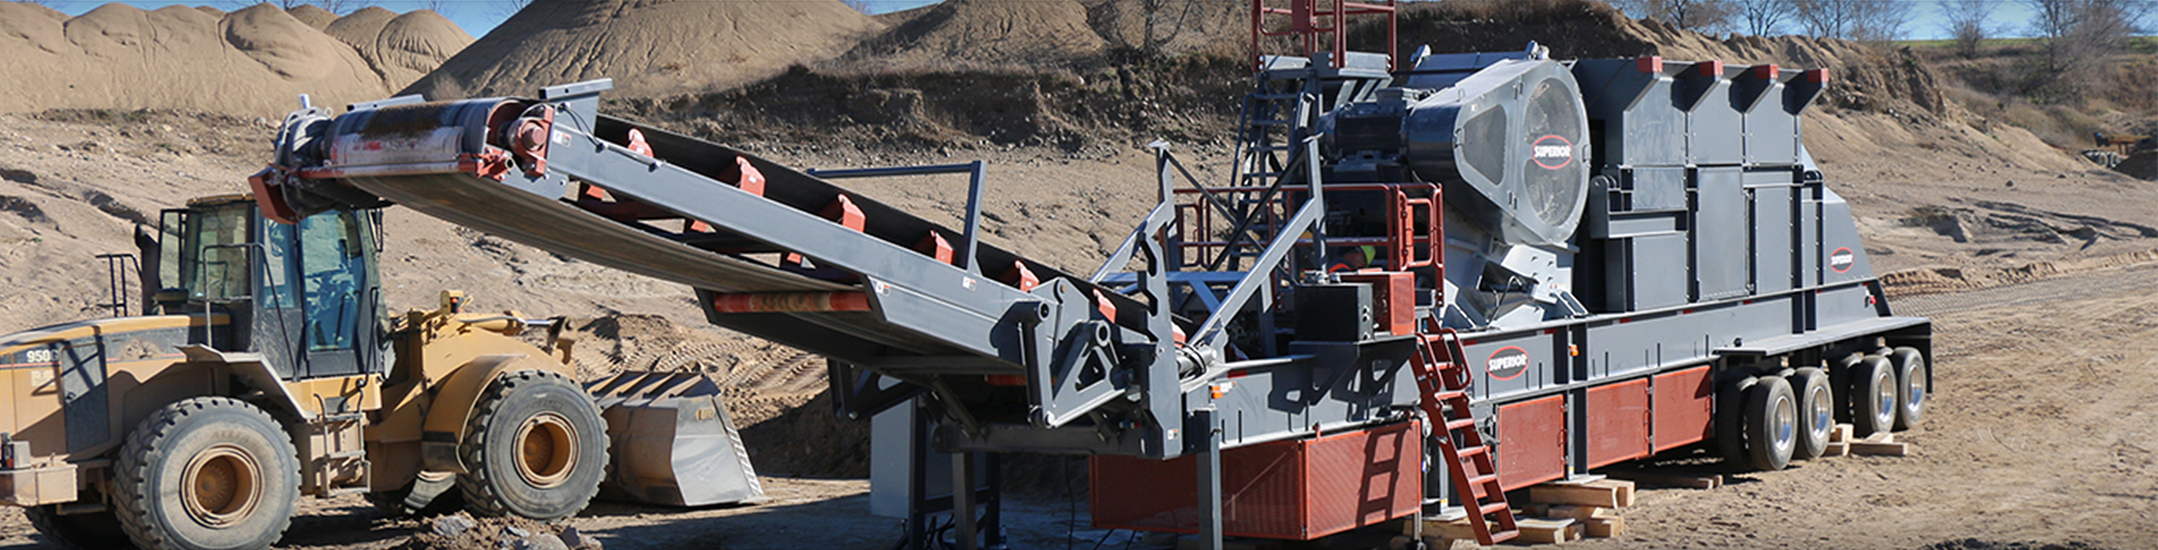 Liberty® Jaw Crusher Plant by Superior Industries